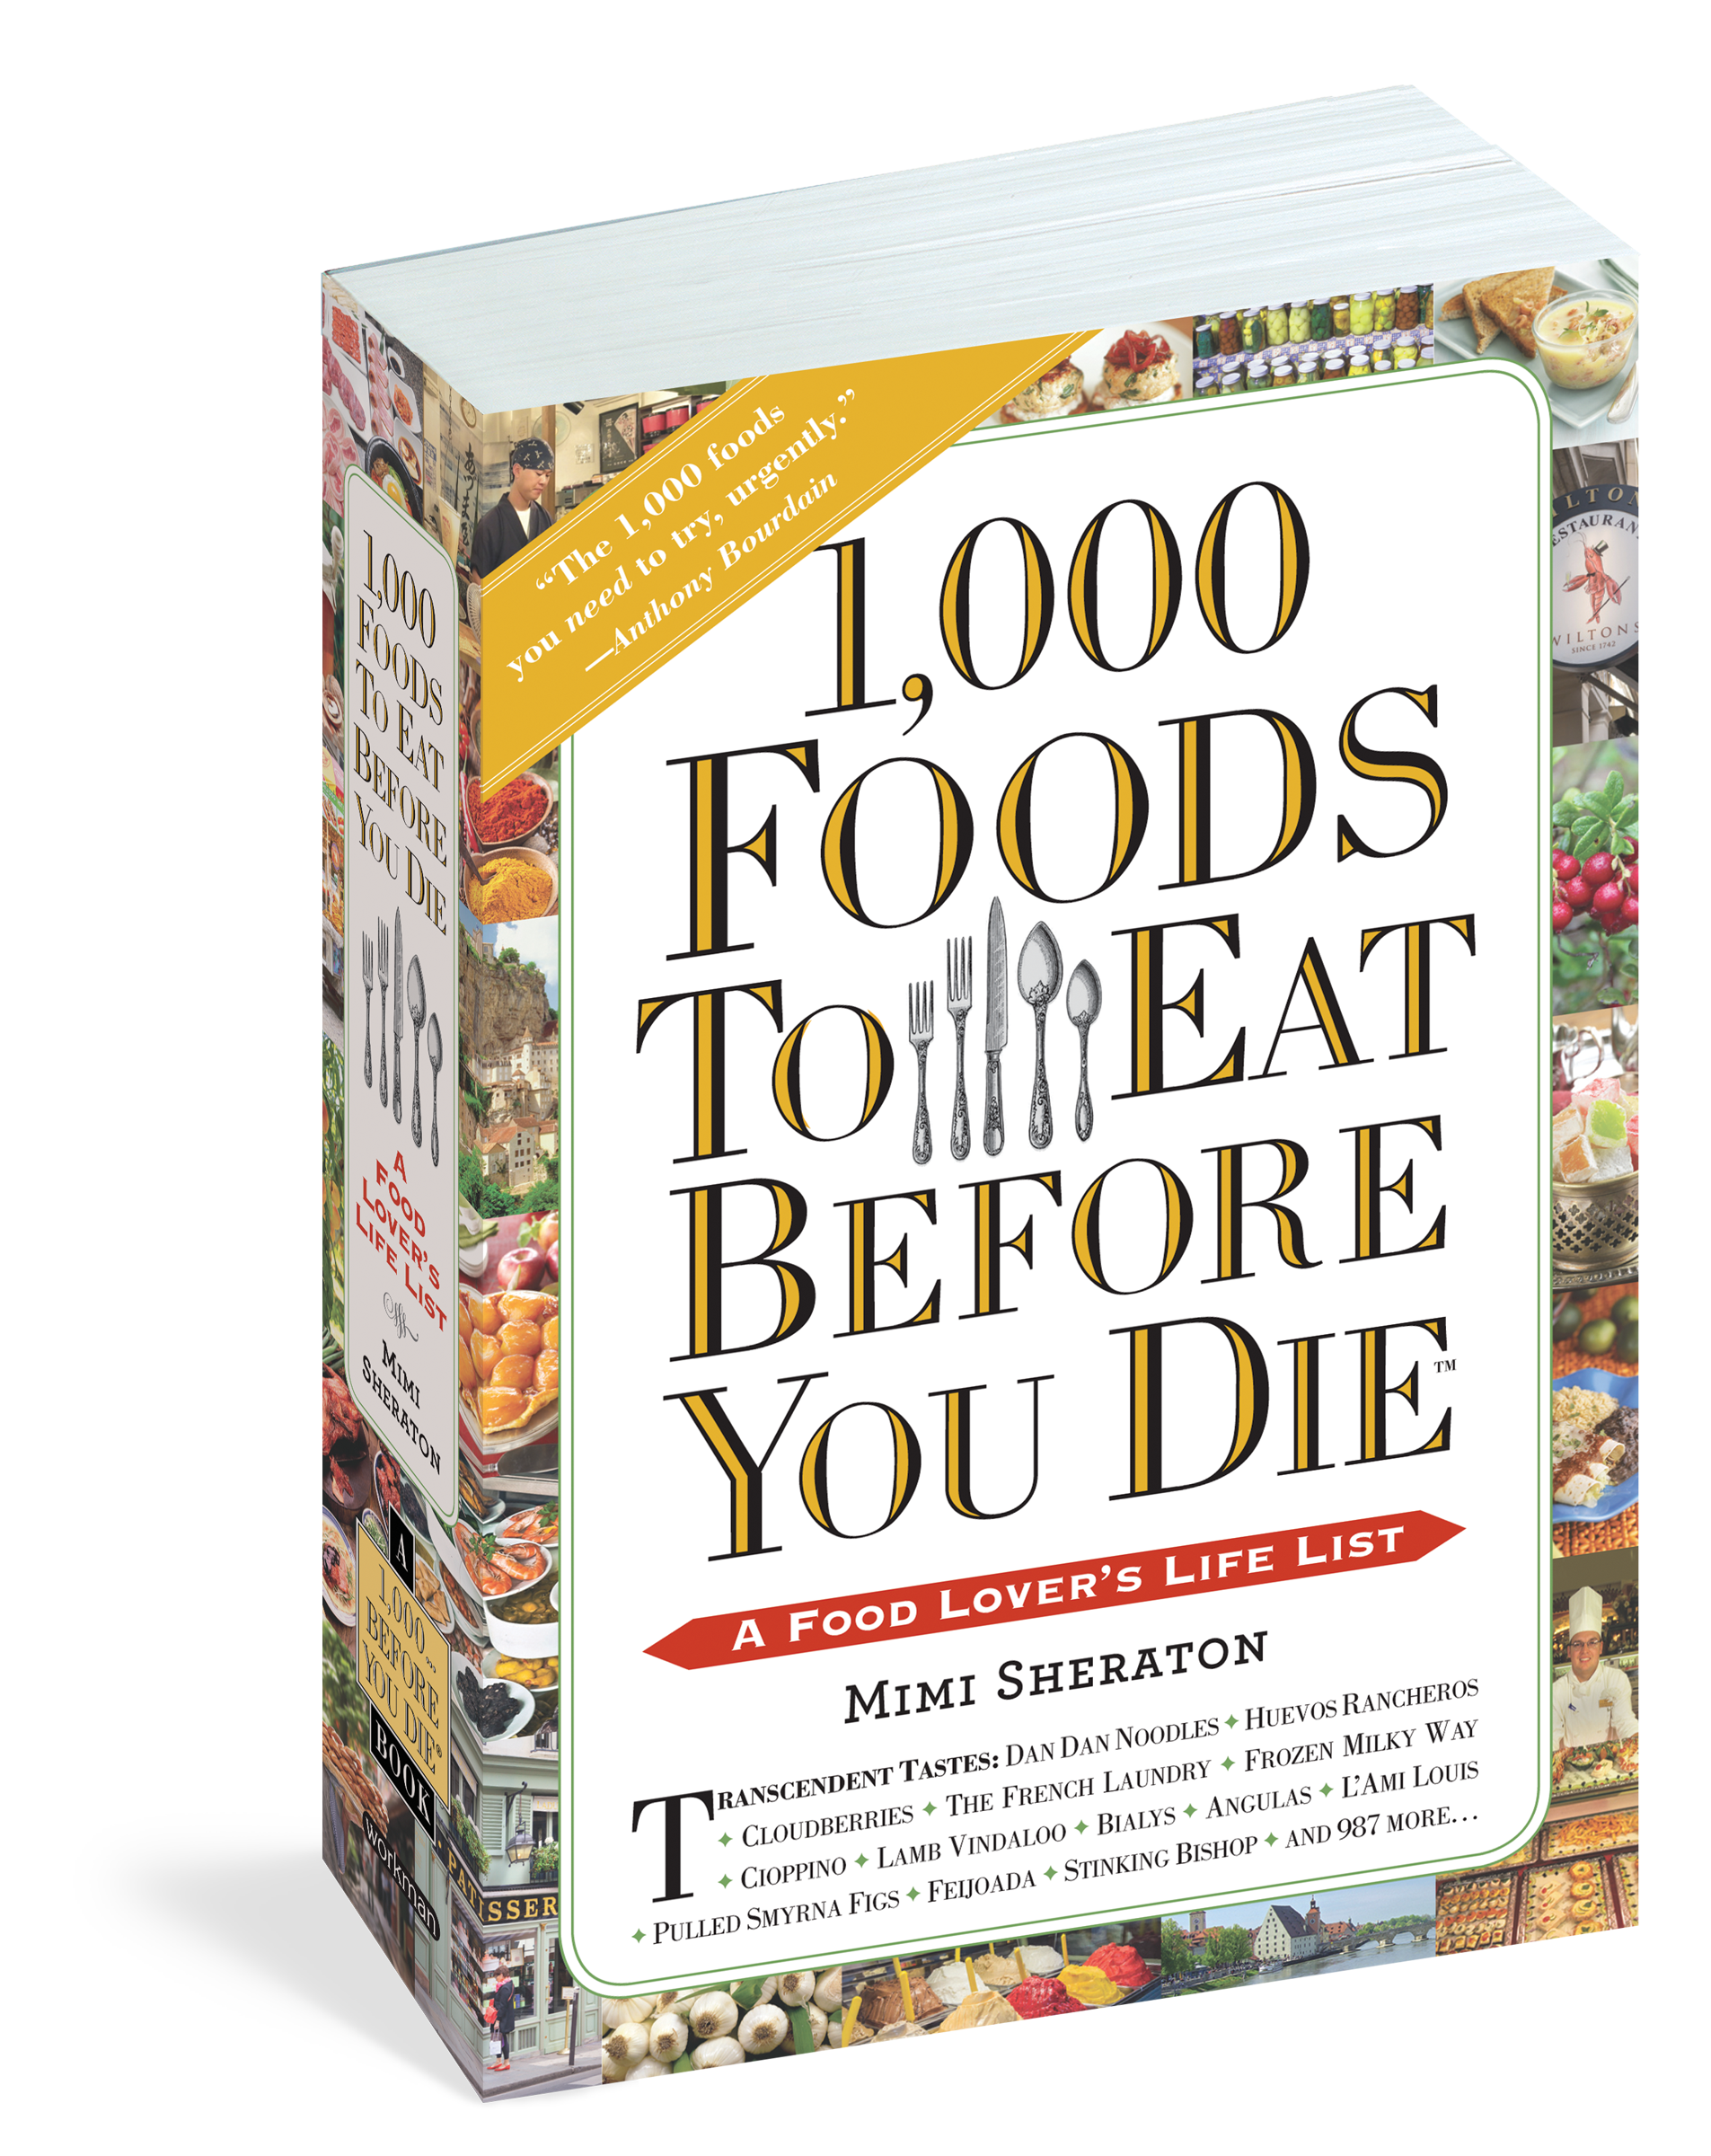 1,000 Foods To Eat Before You Die. A Food Lover's Life List